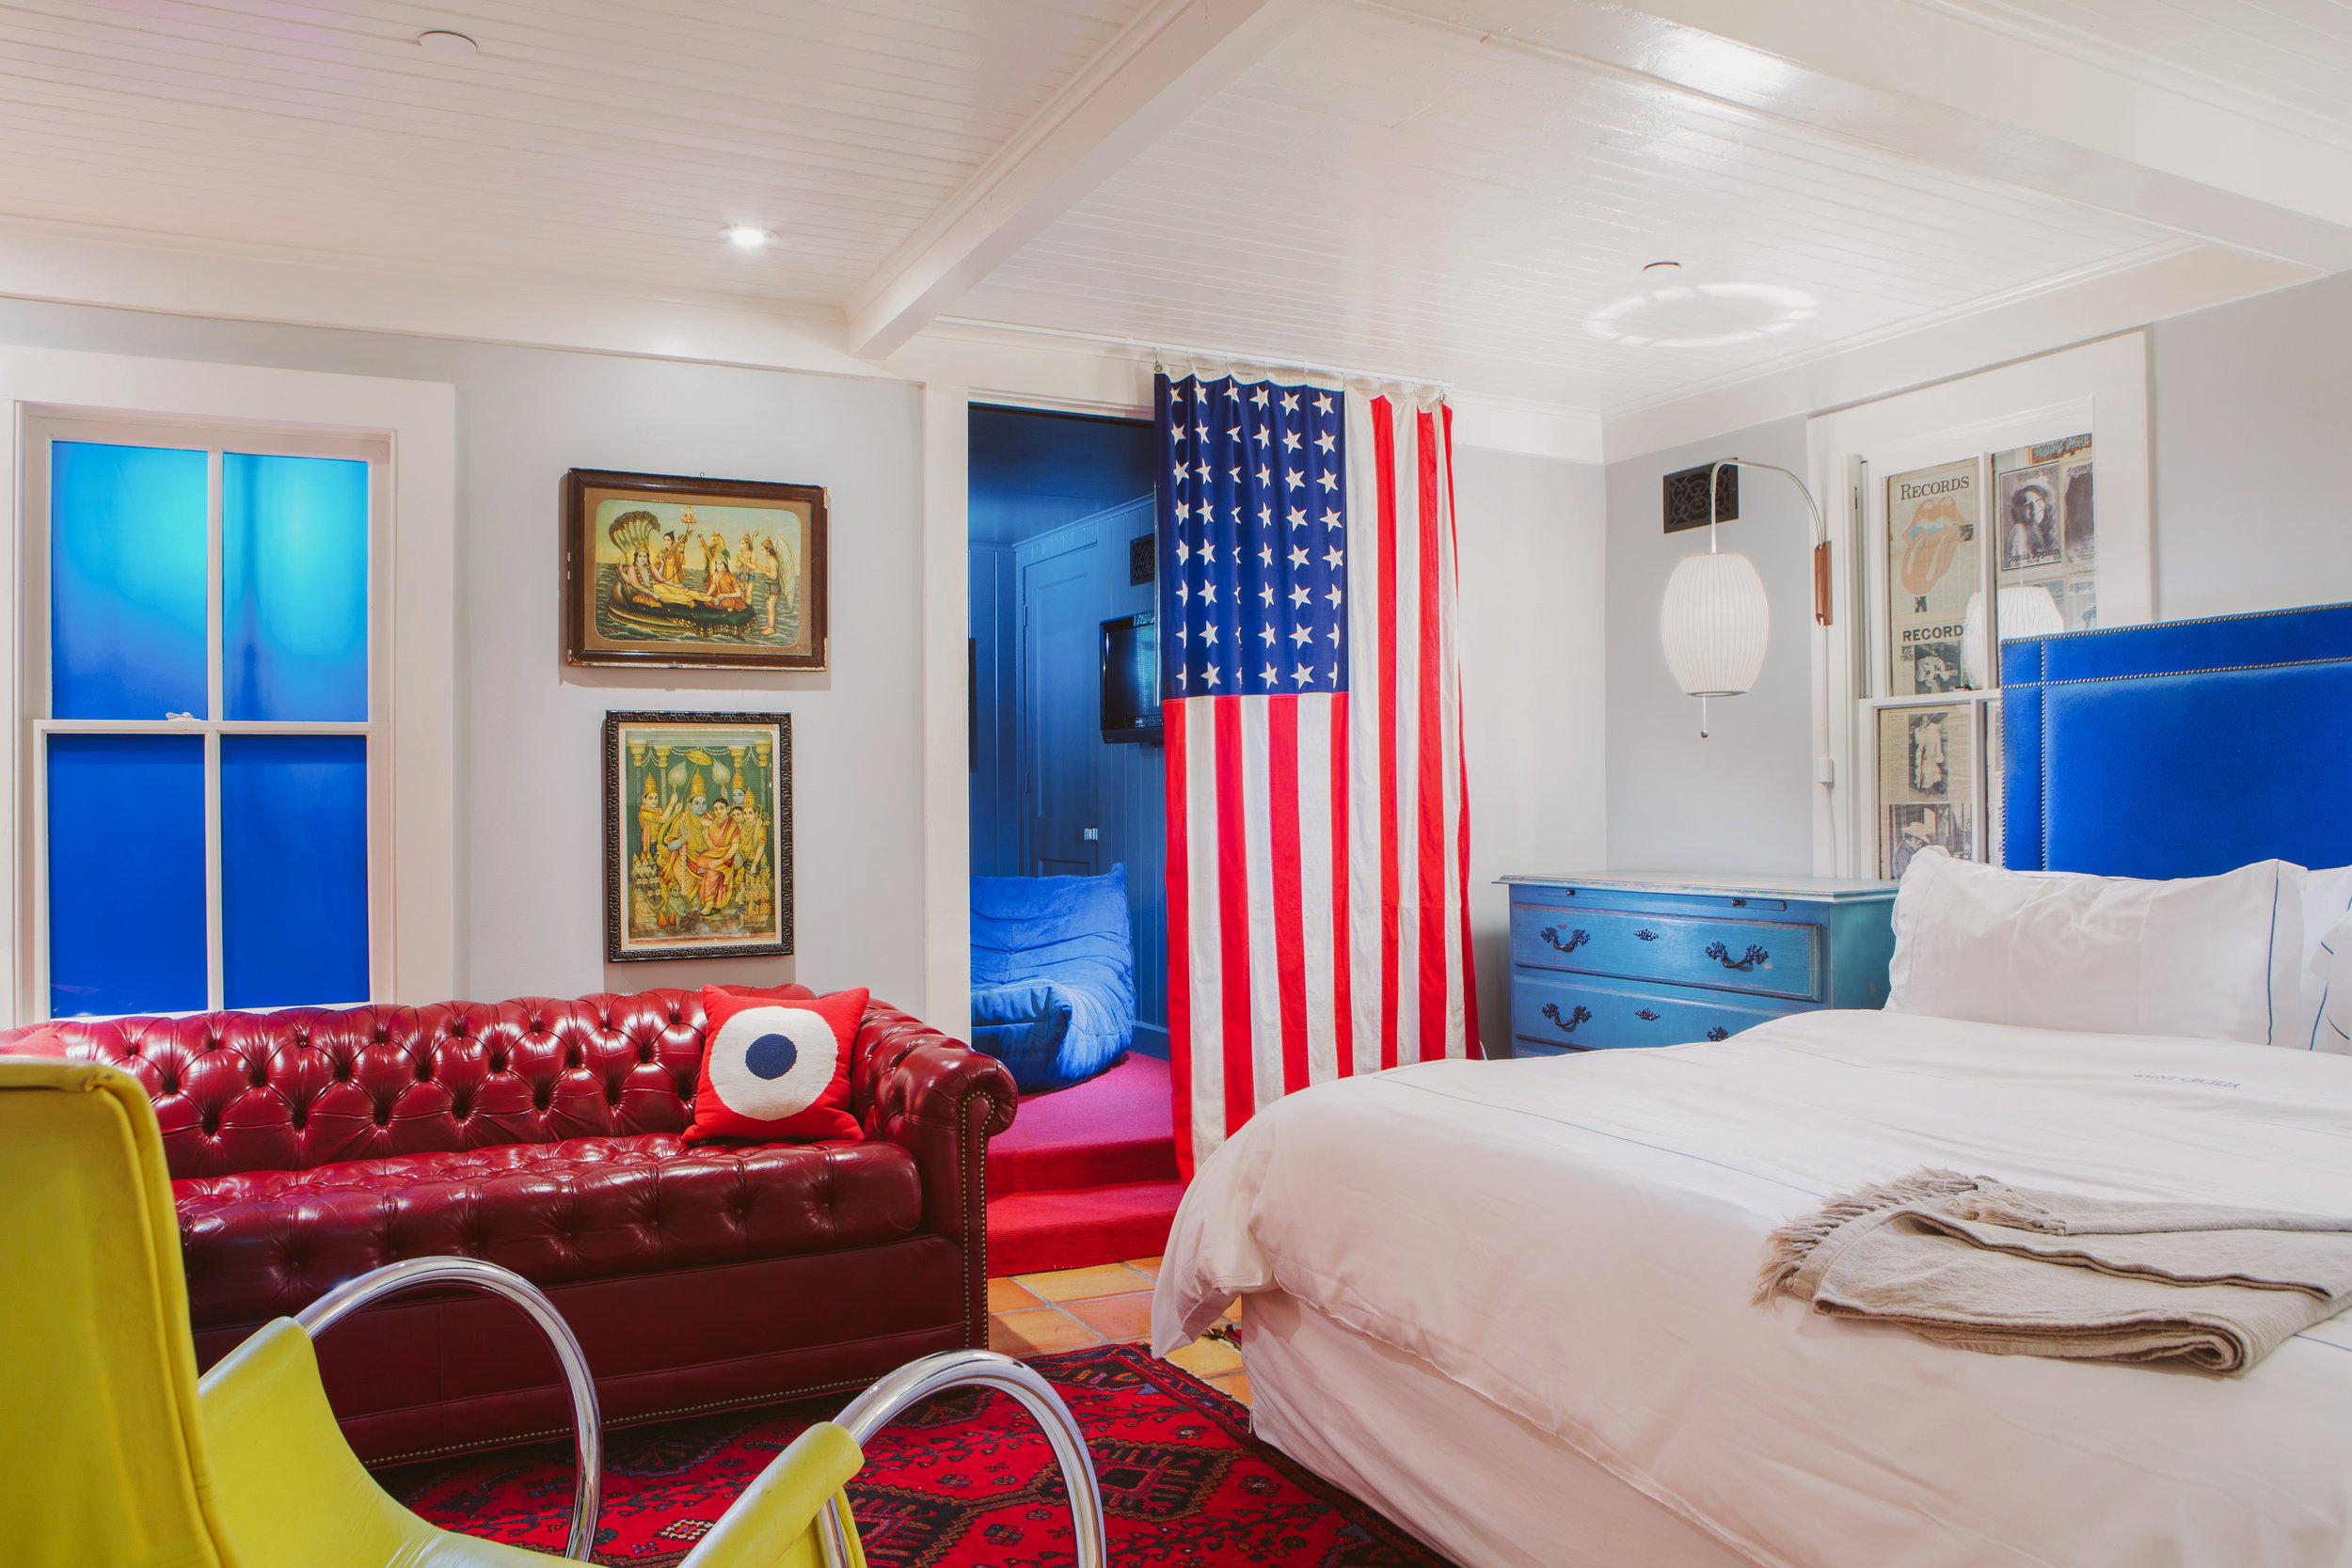 Hotel-Saint-Cecilia-suite-with-flag-Photographer-Nick-Simonite.jpg